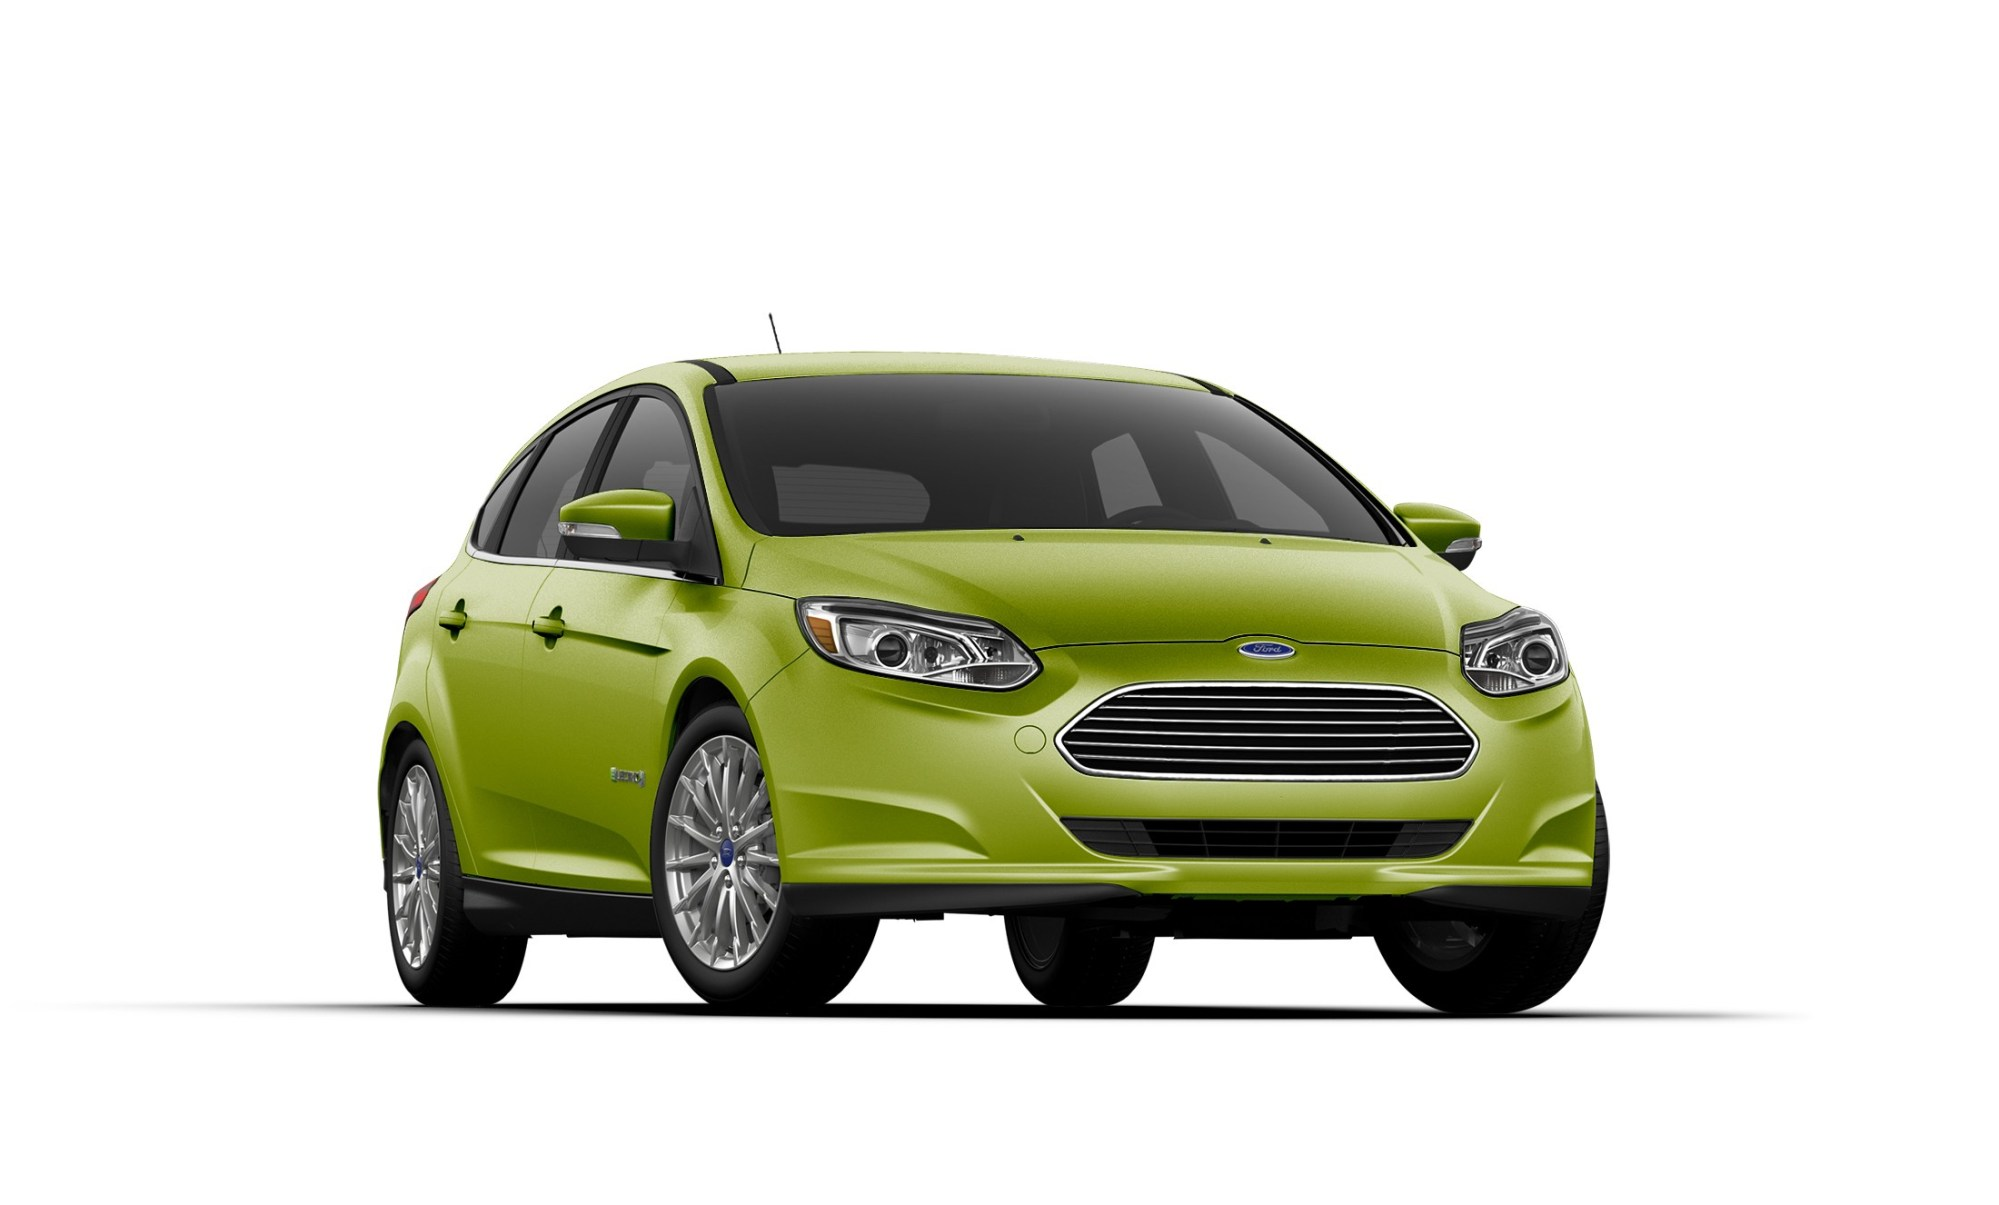 hight resolution of 2018 ford focus electric in outrageous green metallic paint